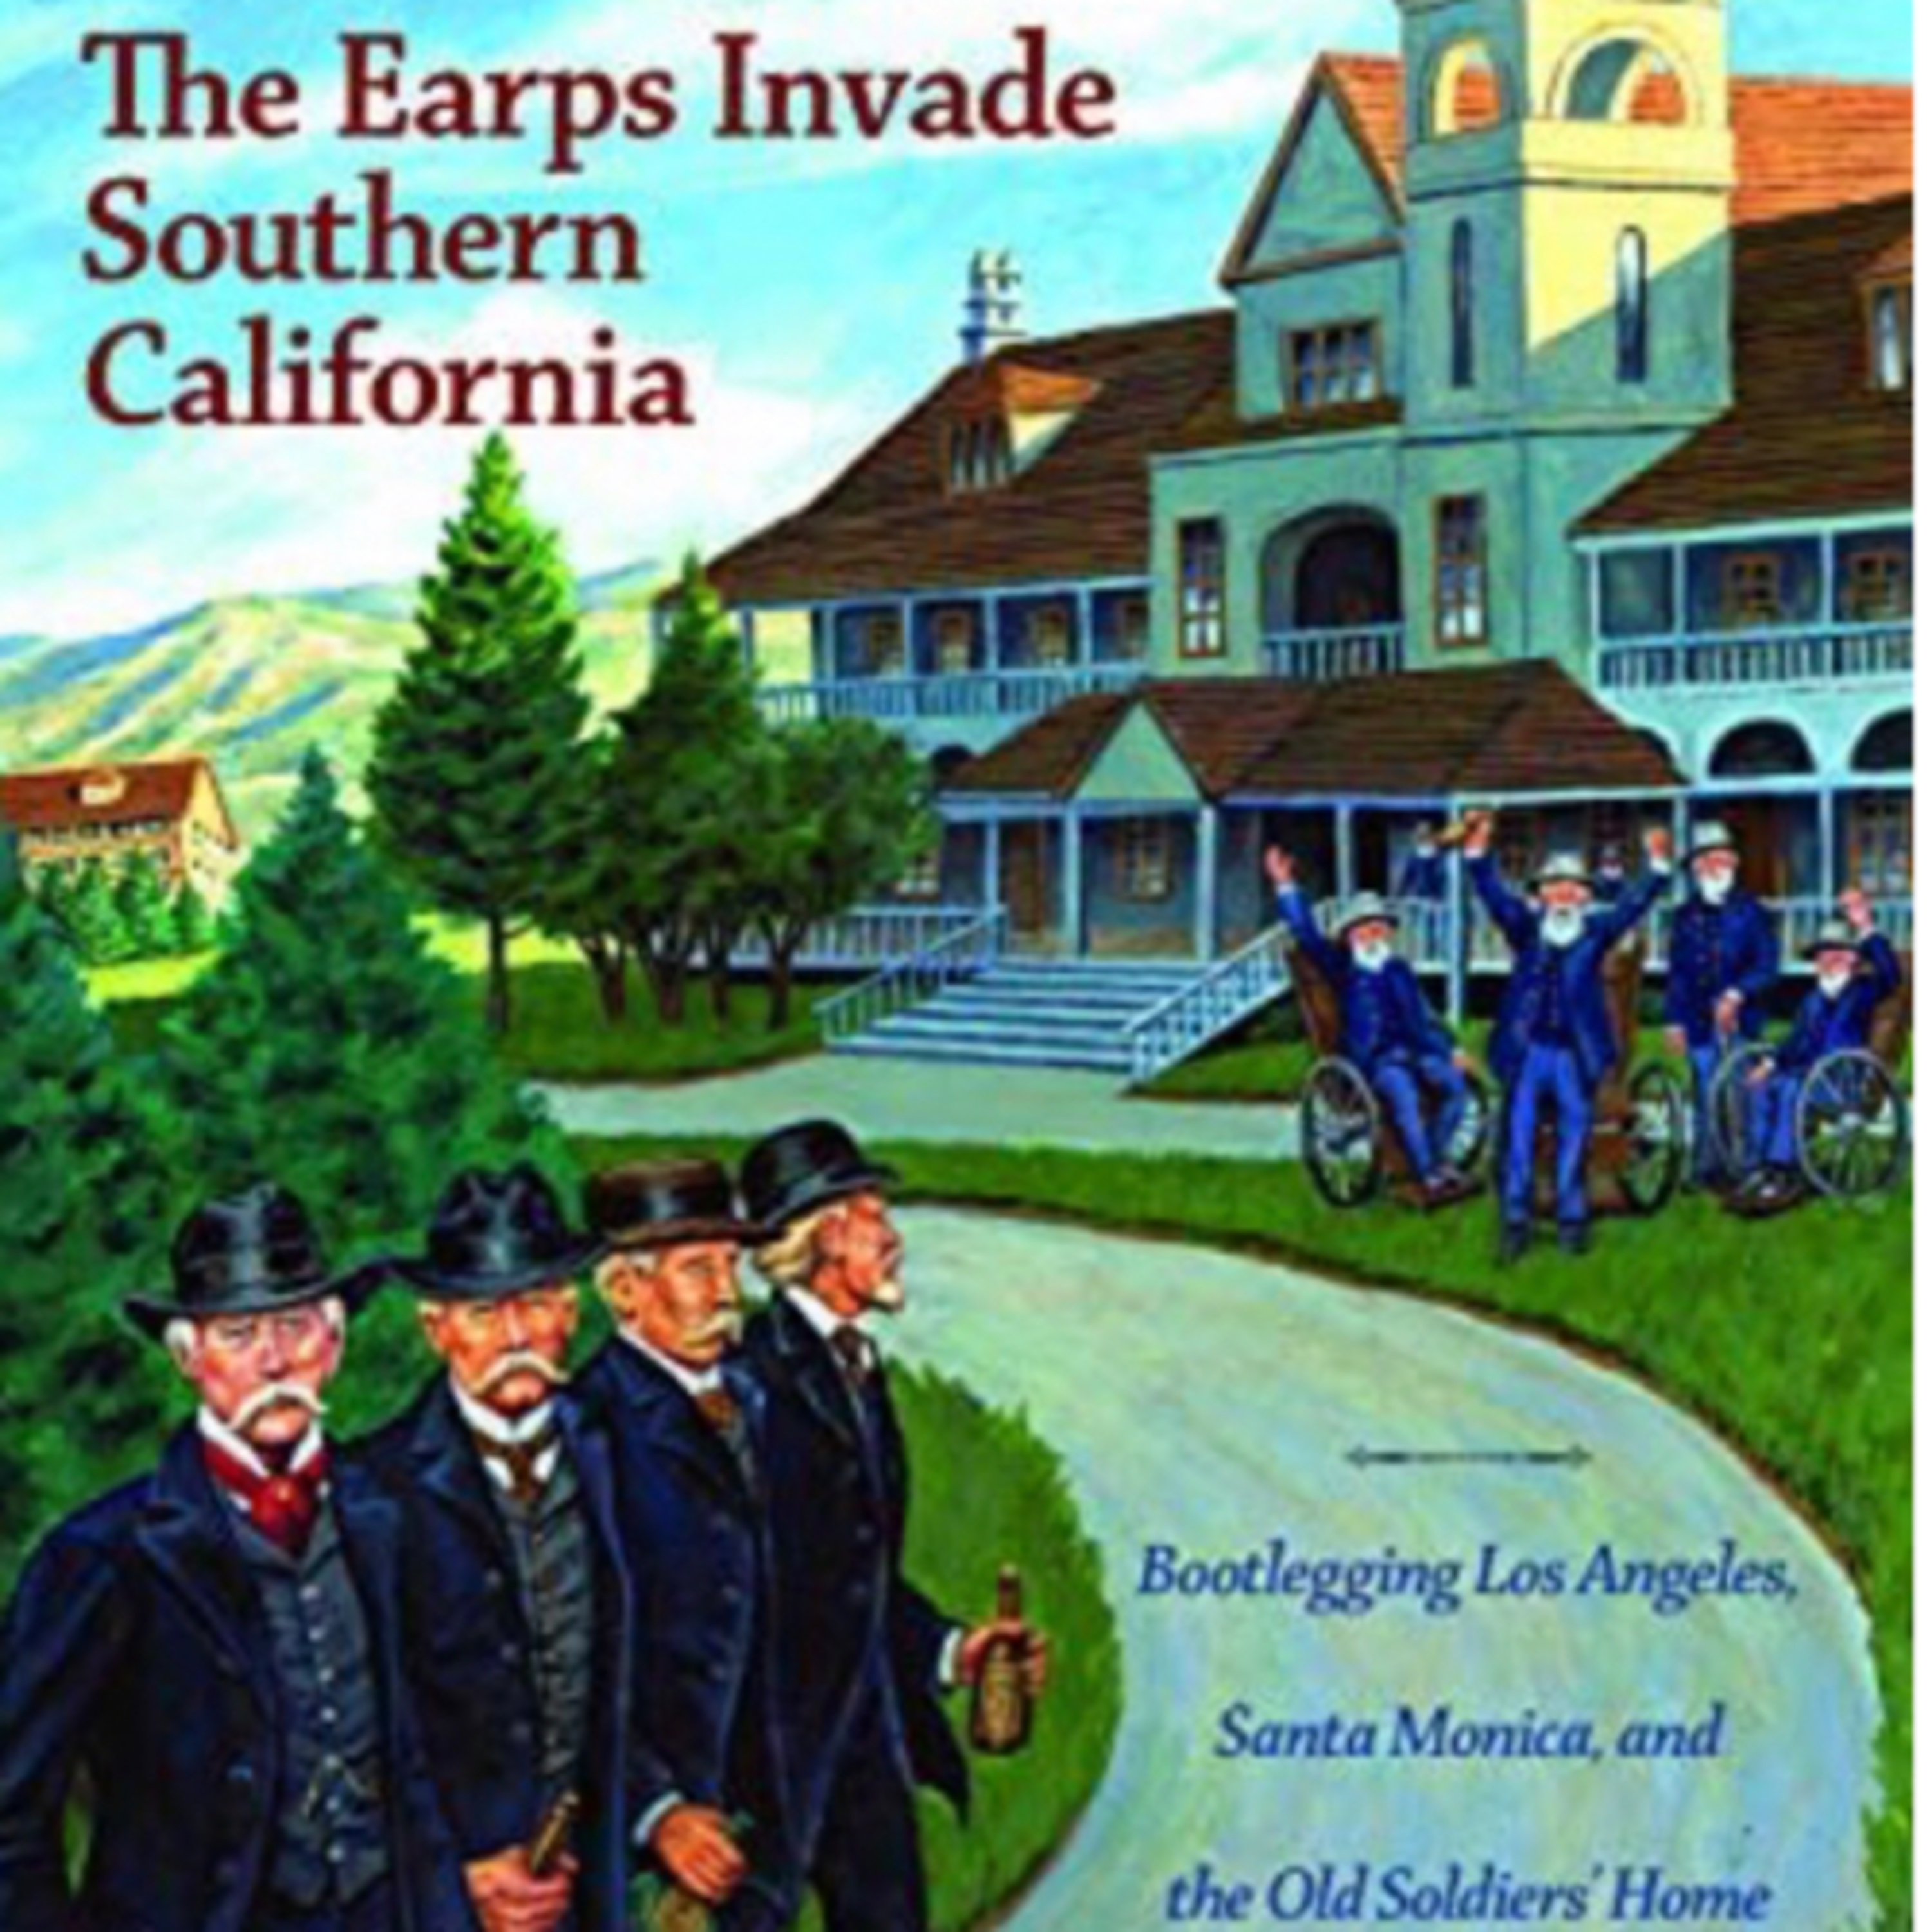 History Series Part 7 - David de Haas talks about The Earp's in Southern California.